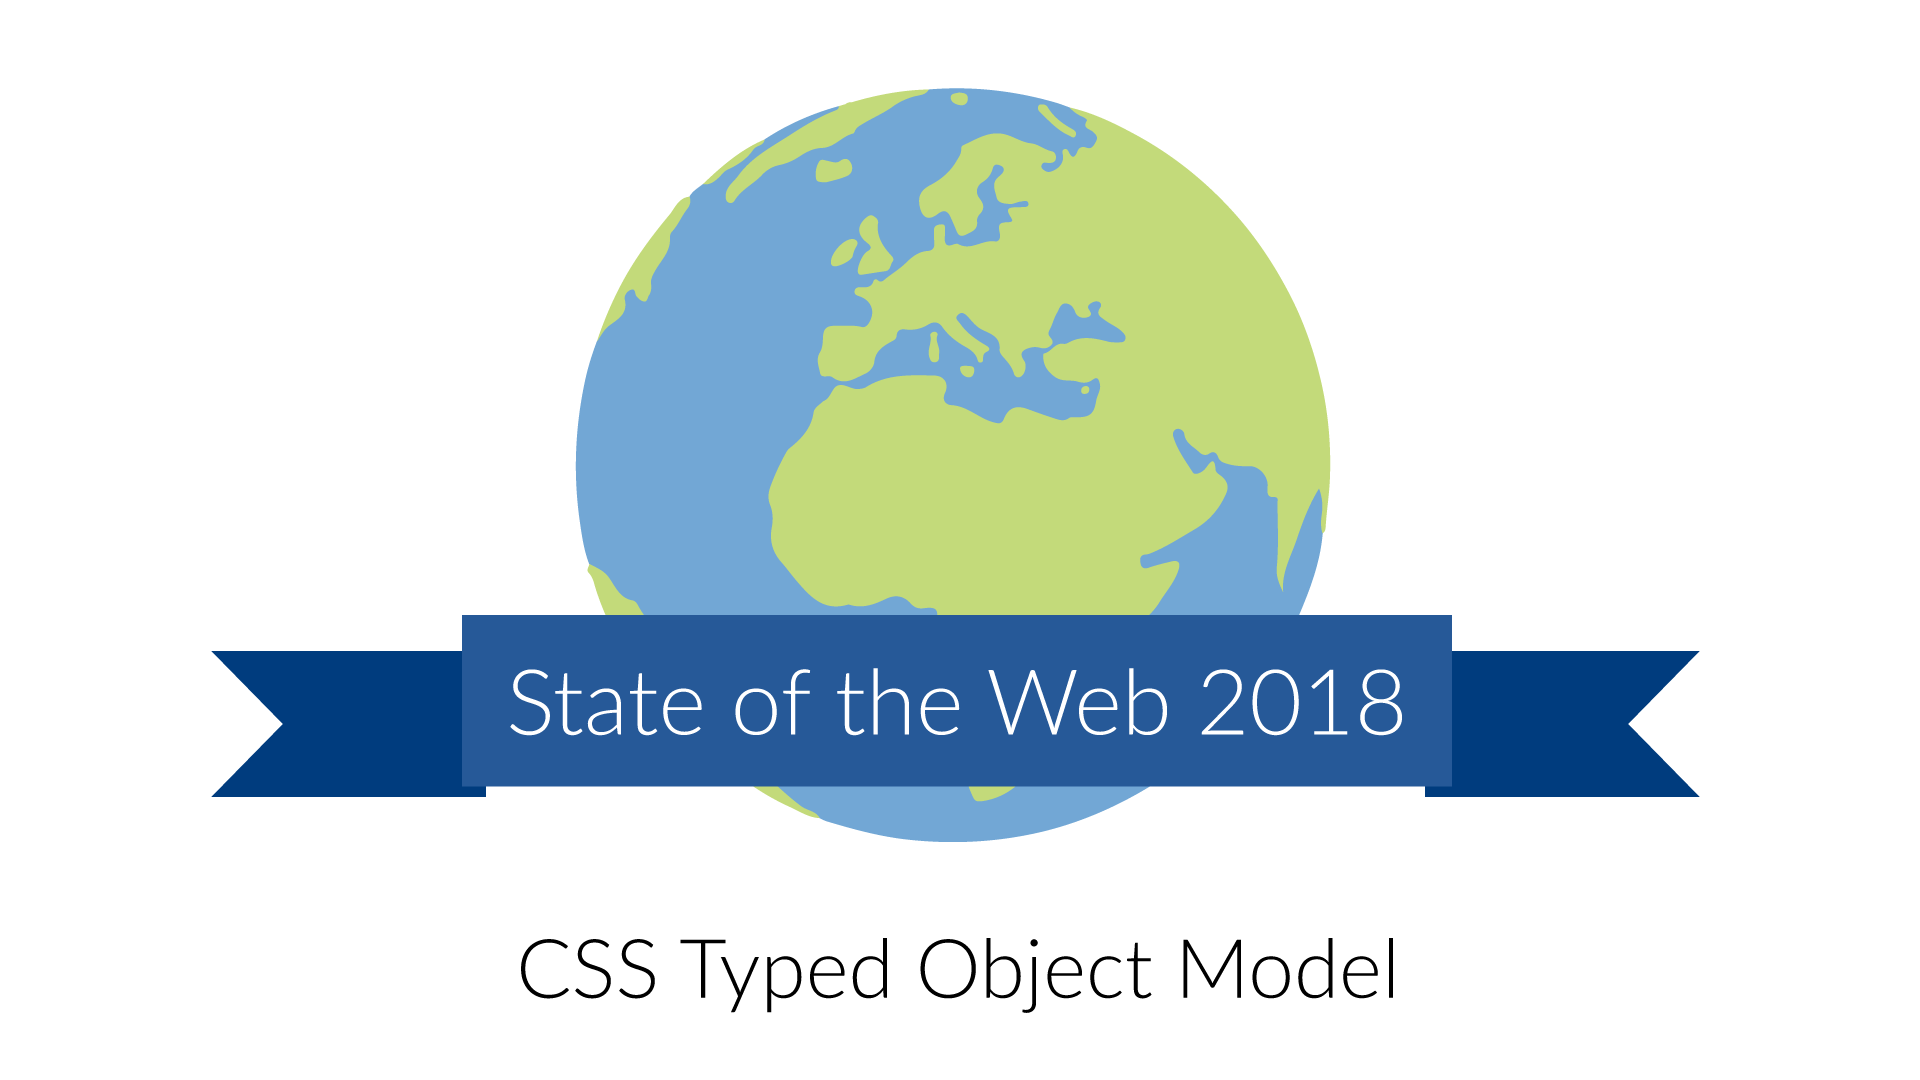 CSS Typed Object Model State of the Web